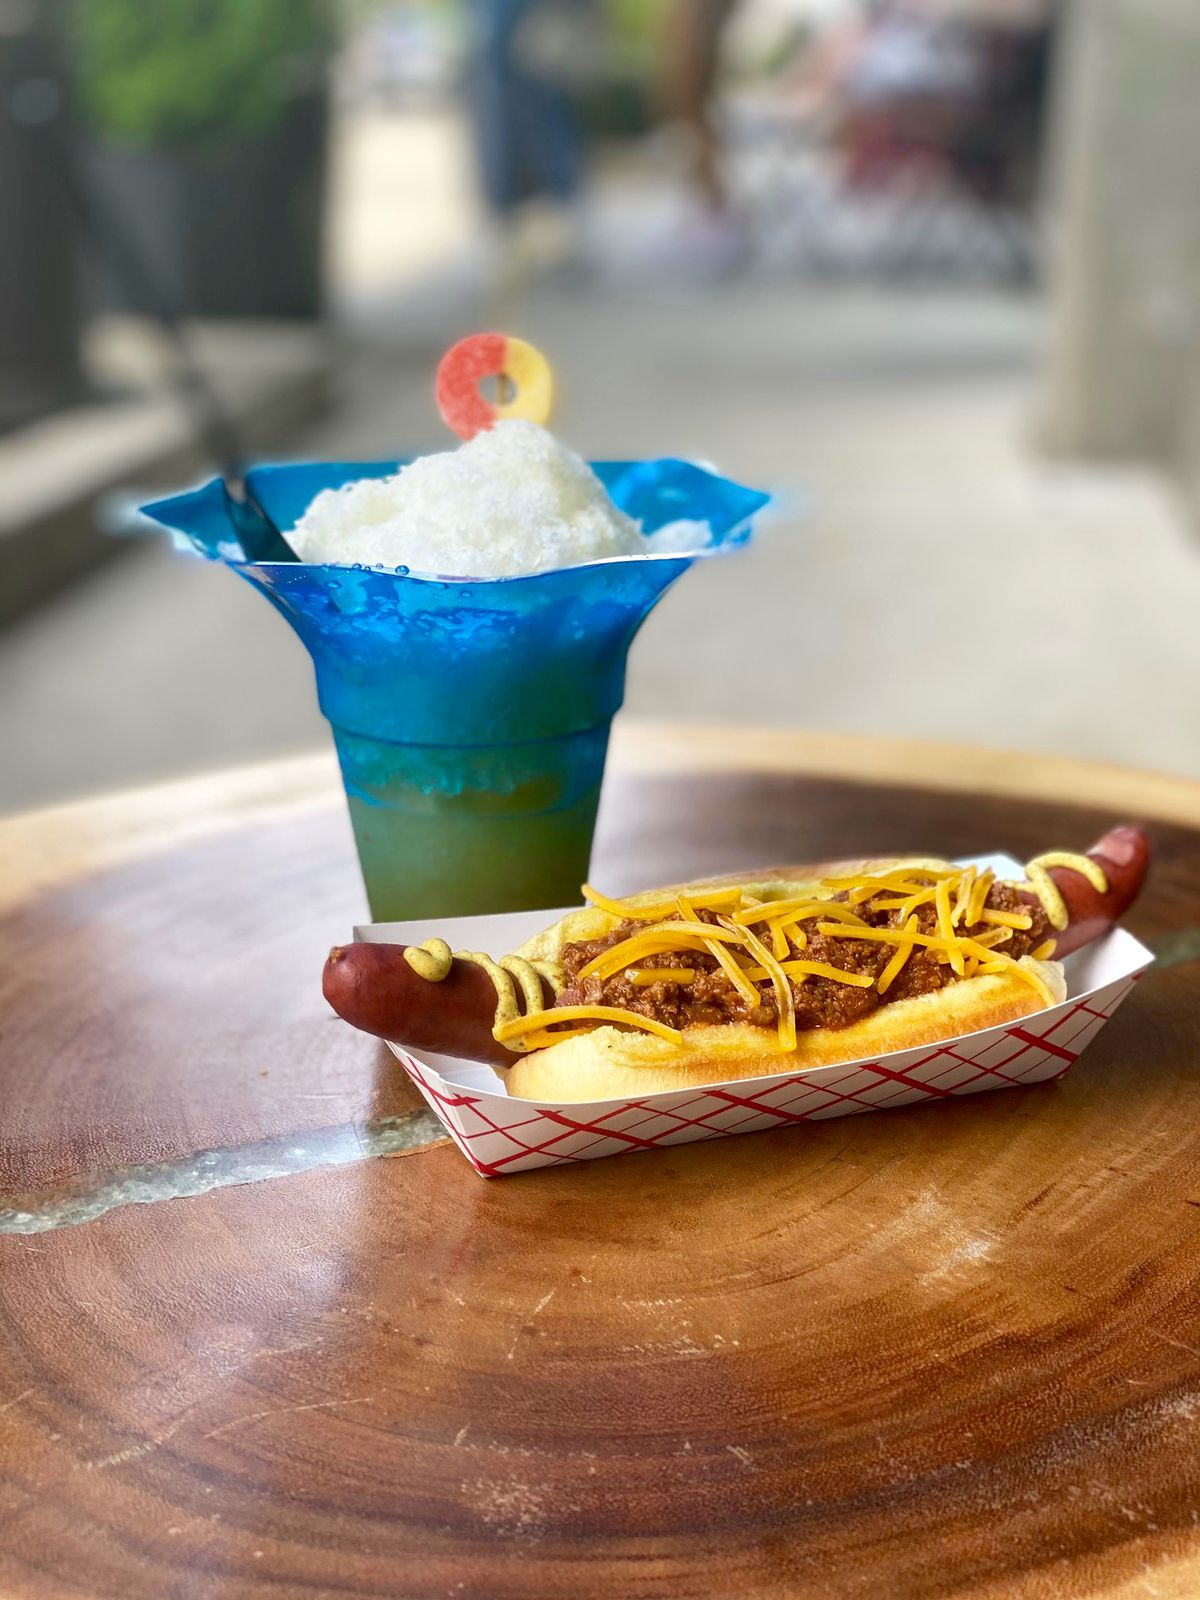 The Cream Peach cocktail in a blue glass ice cream dish with a peach ring garnish made with bourbon, Aperol, lemon, mint, allspice dram, sugar, condensed milk. The hot dog pictured with that cocktail is the chili dog - house made chili, sharp cheddar, spicy mustard.